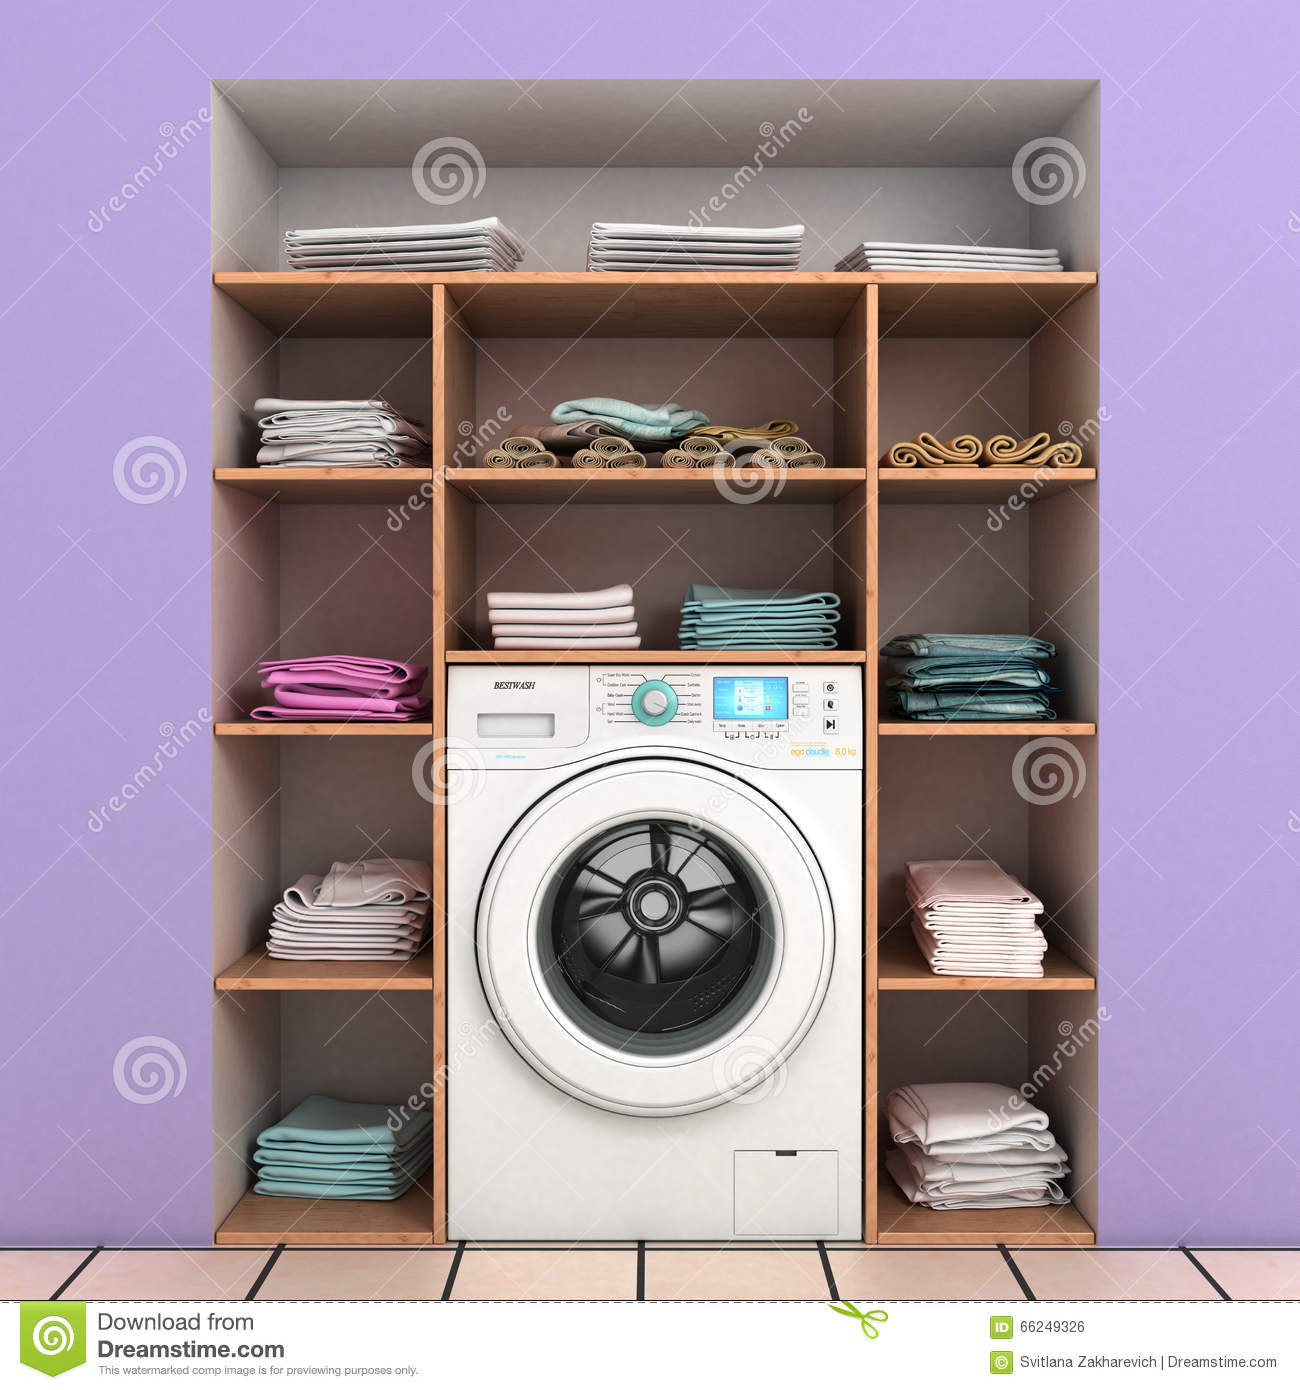 Washing Machine With Built-in Wall Shelves Stock Photo - Image of ...